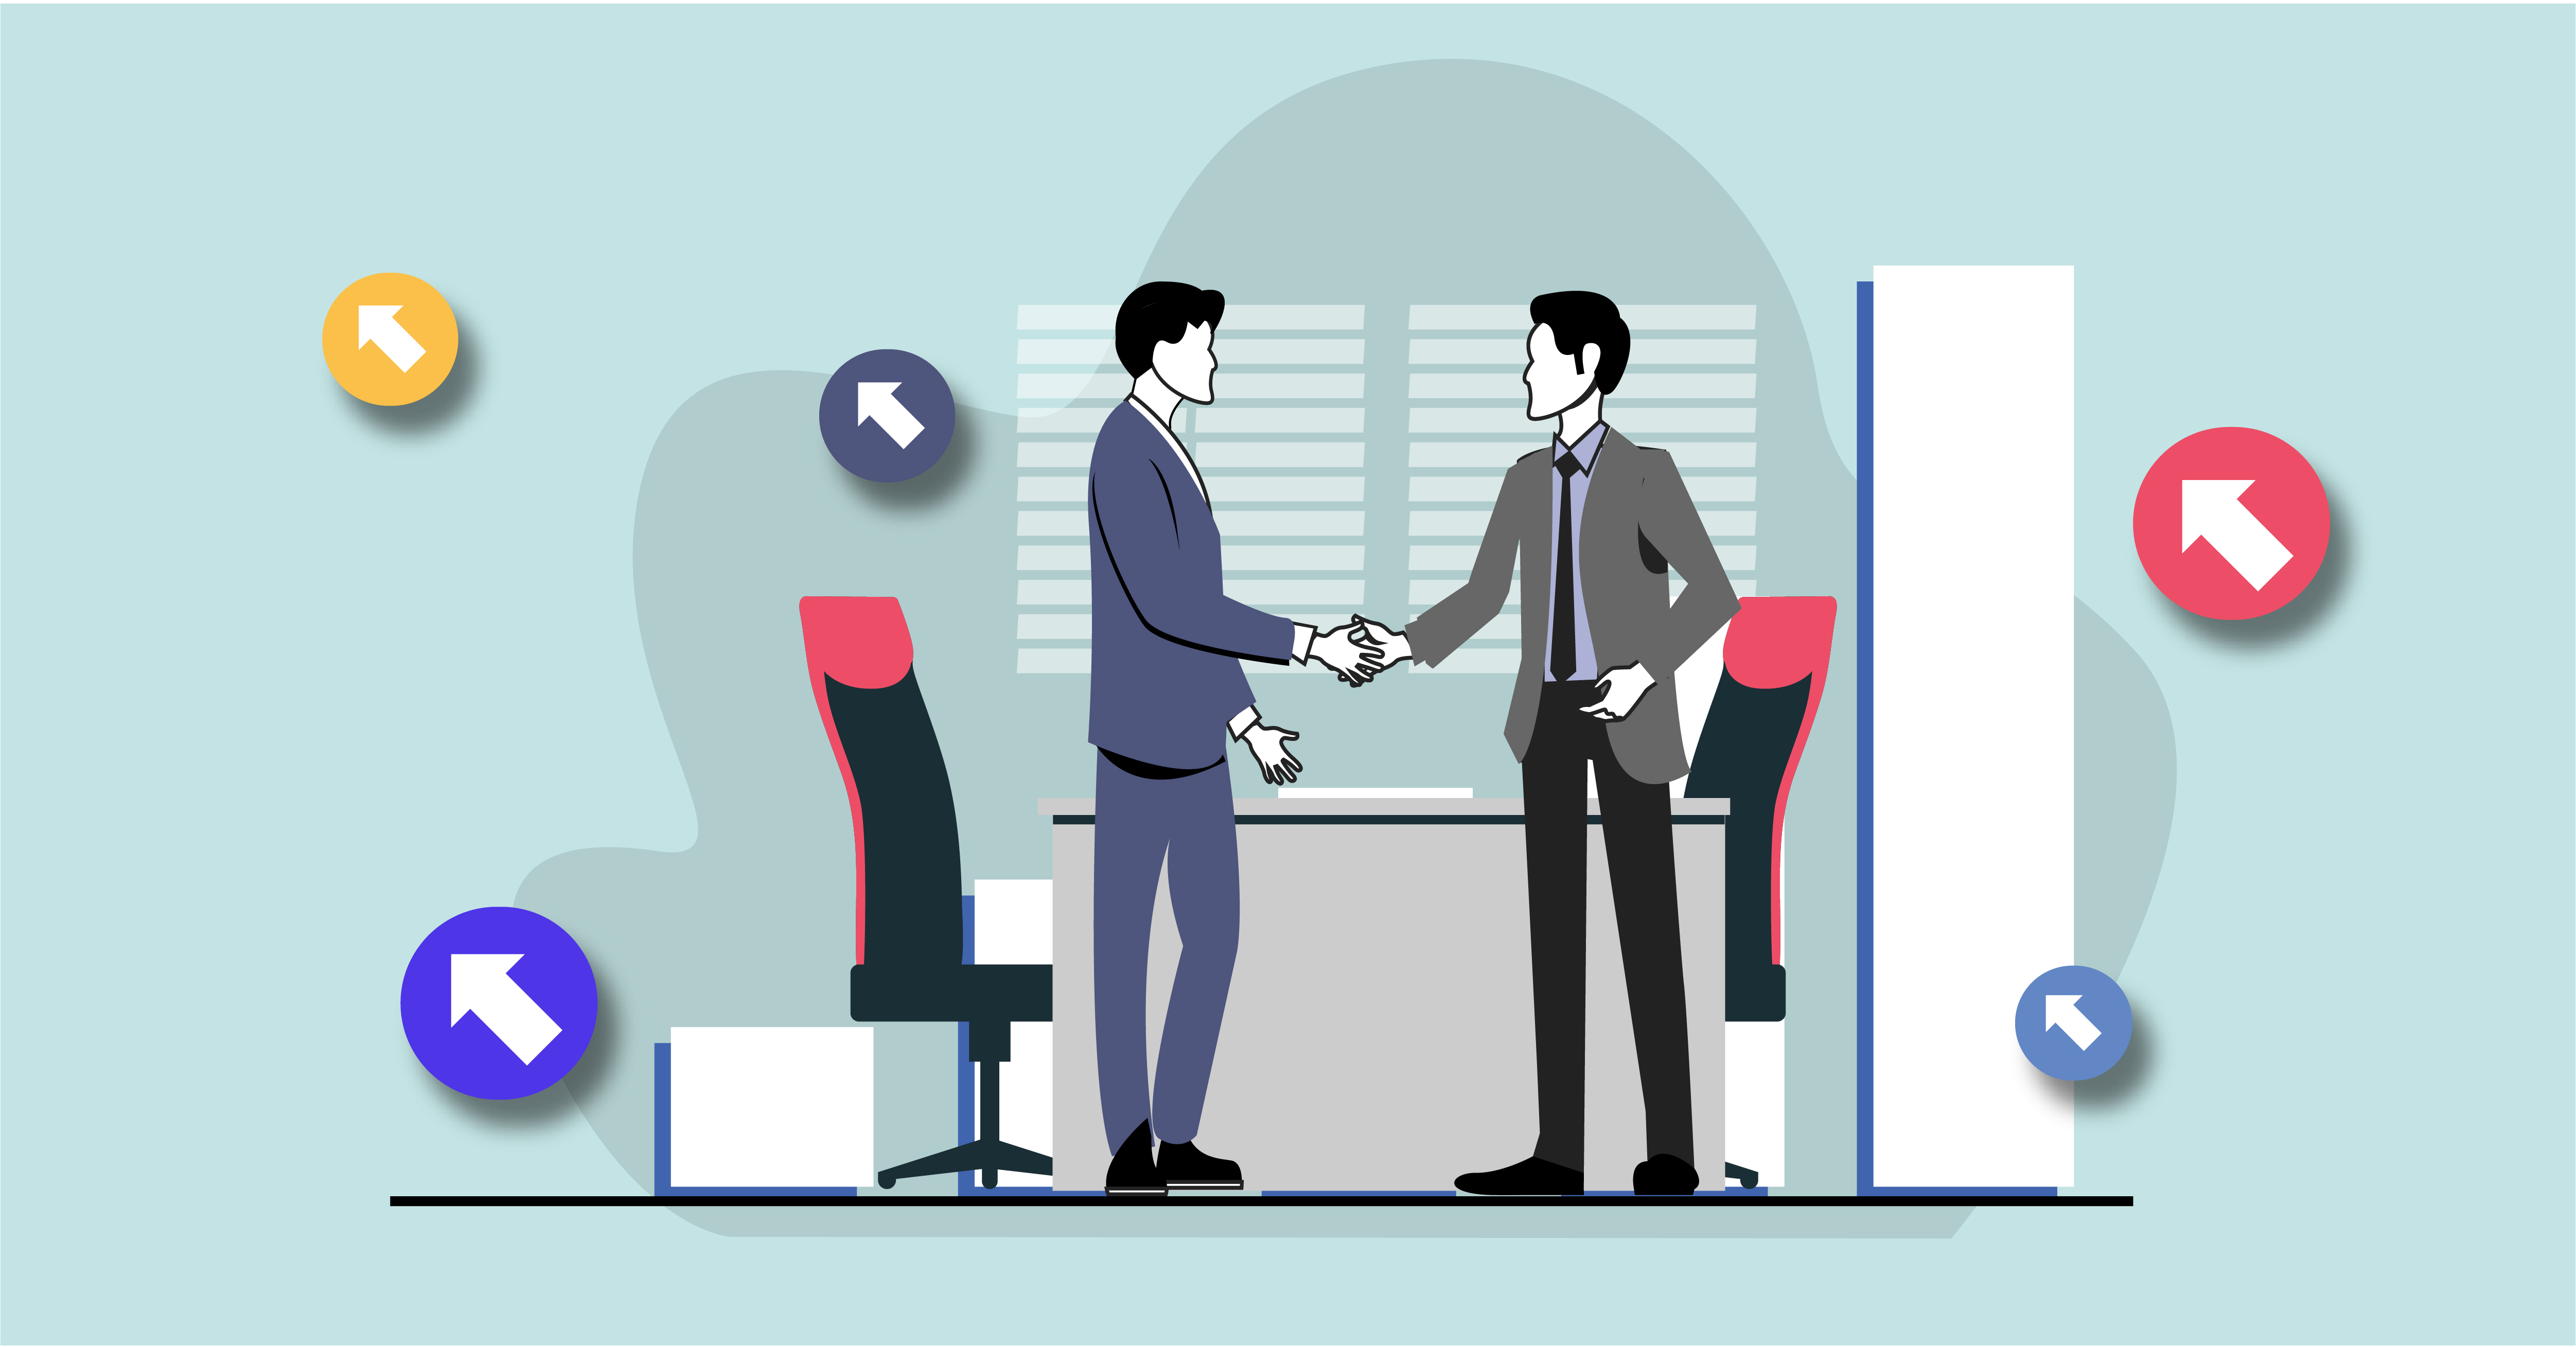 Top 5 sales closing techniques to close more deals in 2021